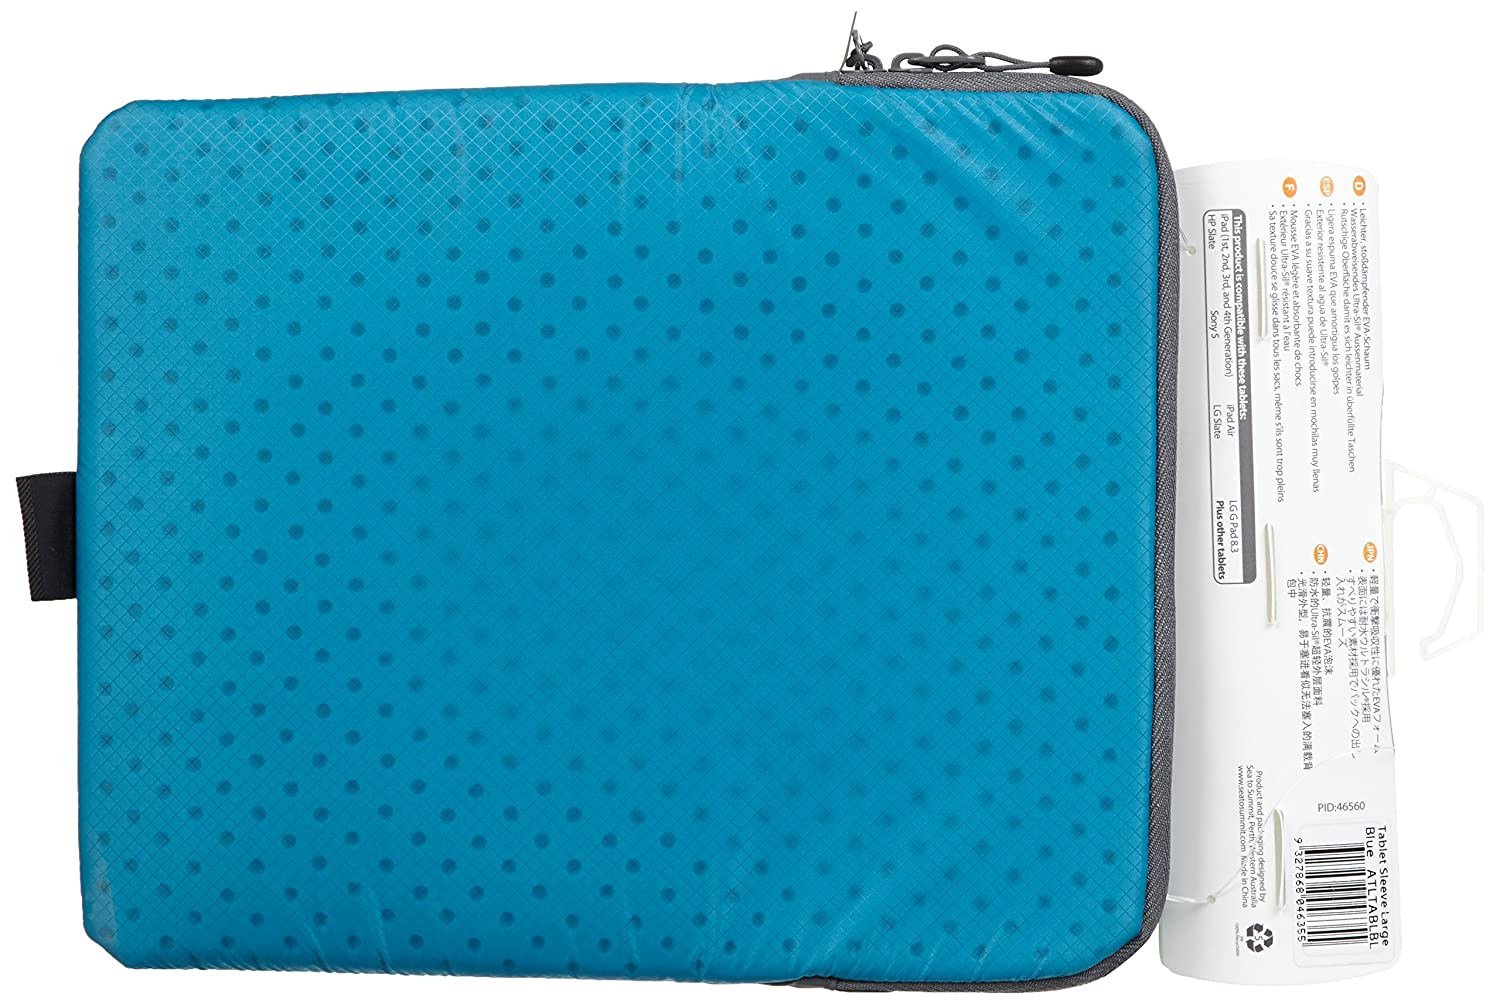 Amazon.com: Sea To Summit Travelling Light Tablet Sleeve, Black, Small: Sea to Summit: Home & Kitchen